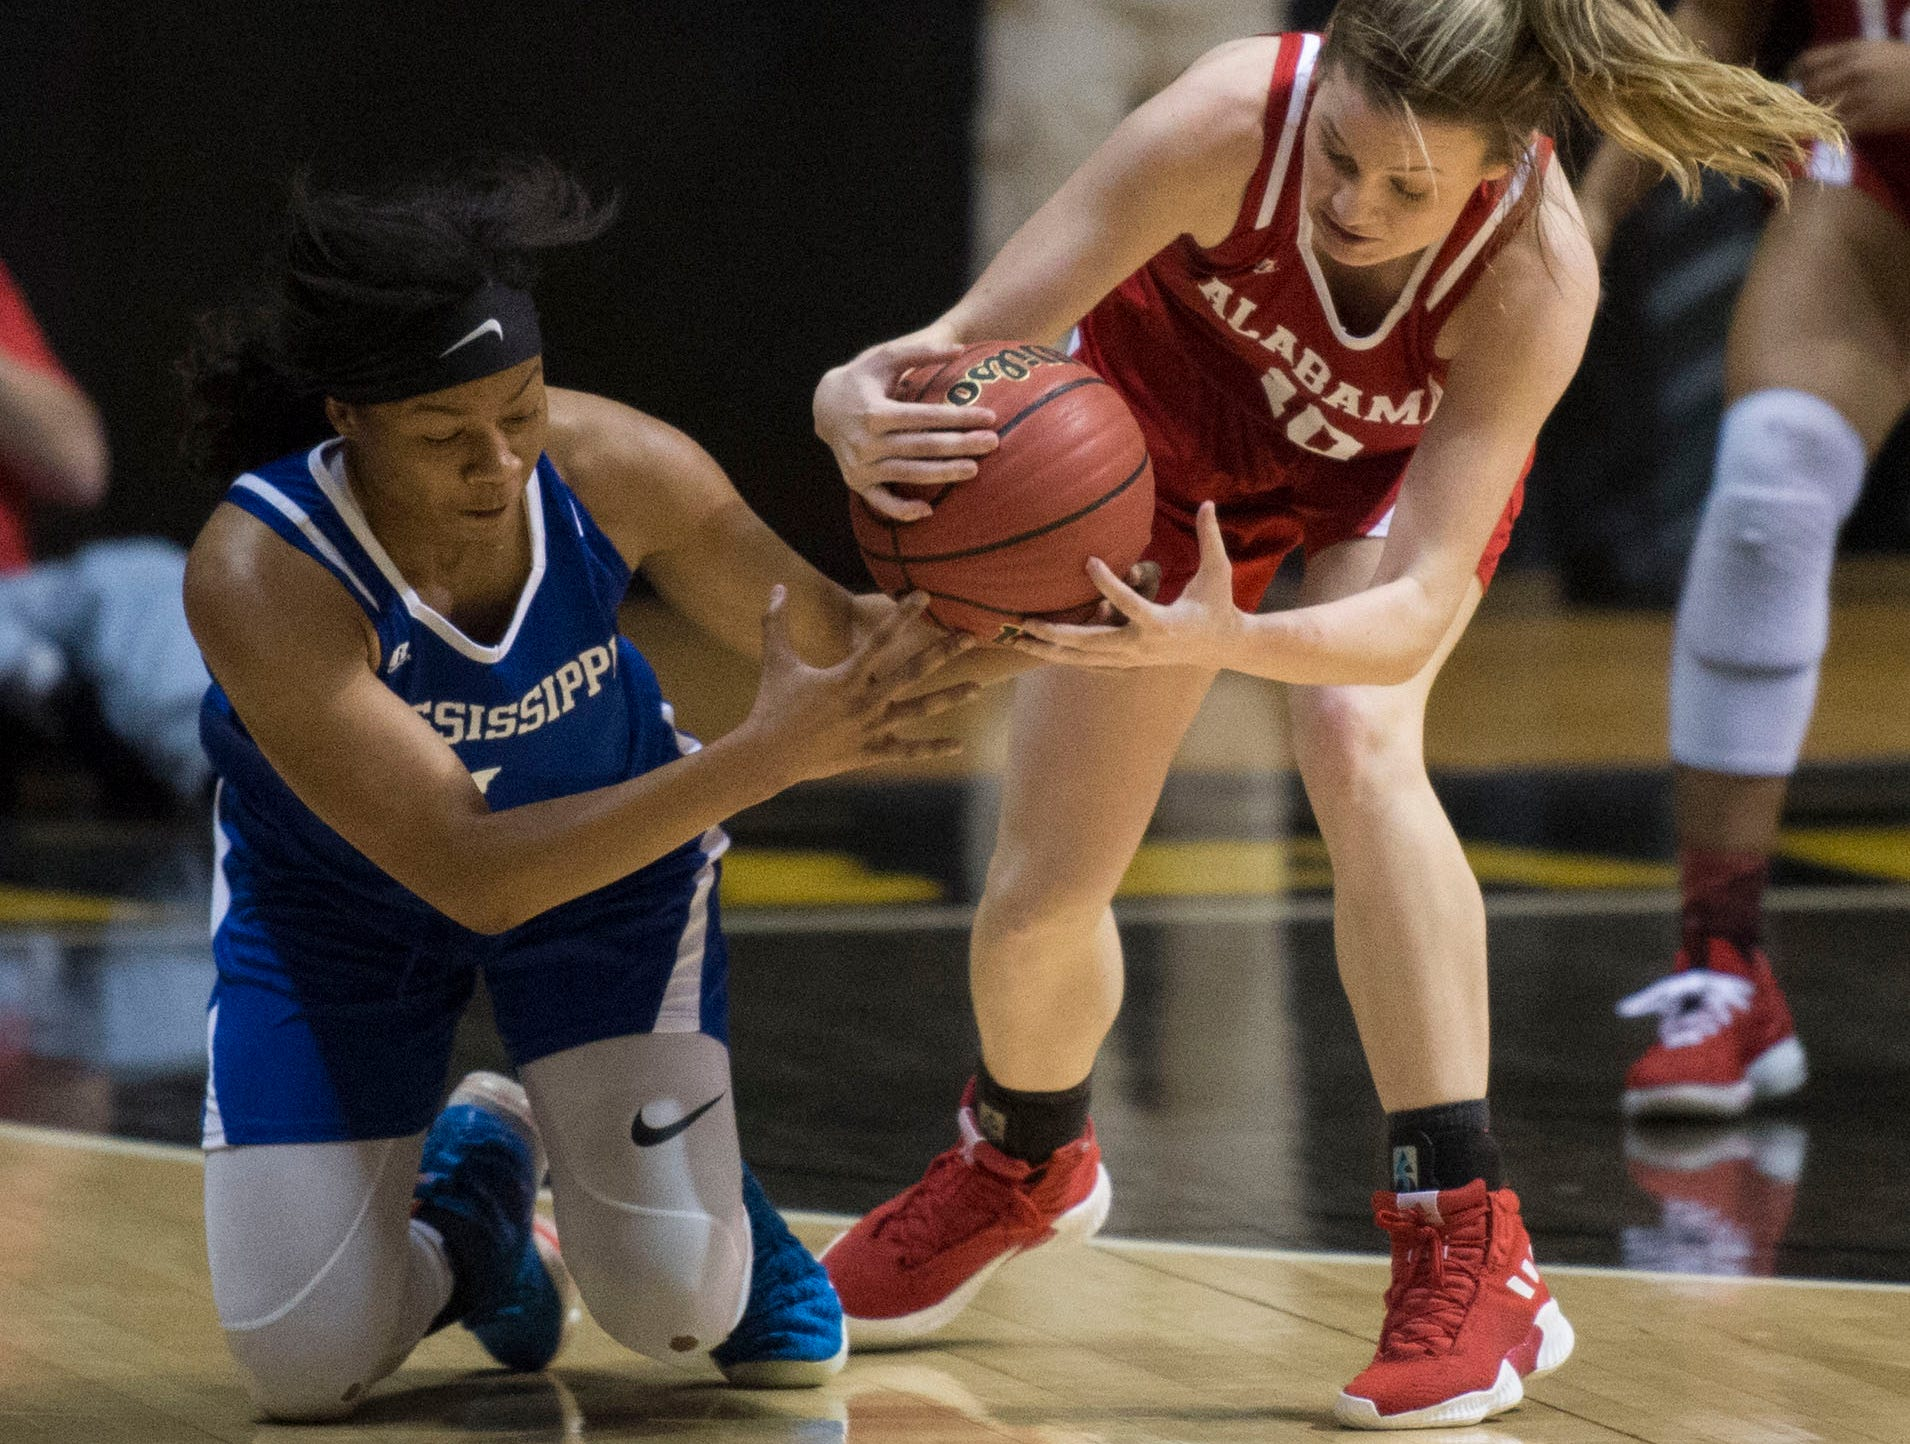 Mississippi's Sania Wells (1) and Alabama's Annie Hughes (10) fight for a loose ball during the Alabama-Mississippi All-Star game at the Dunn-Oliver Acadome in Montgomery, Ala., on Friday, March 15, 2019. Alabama All-stars defeated the Mississippi All-stars 101-82.